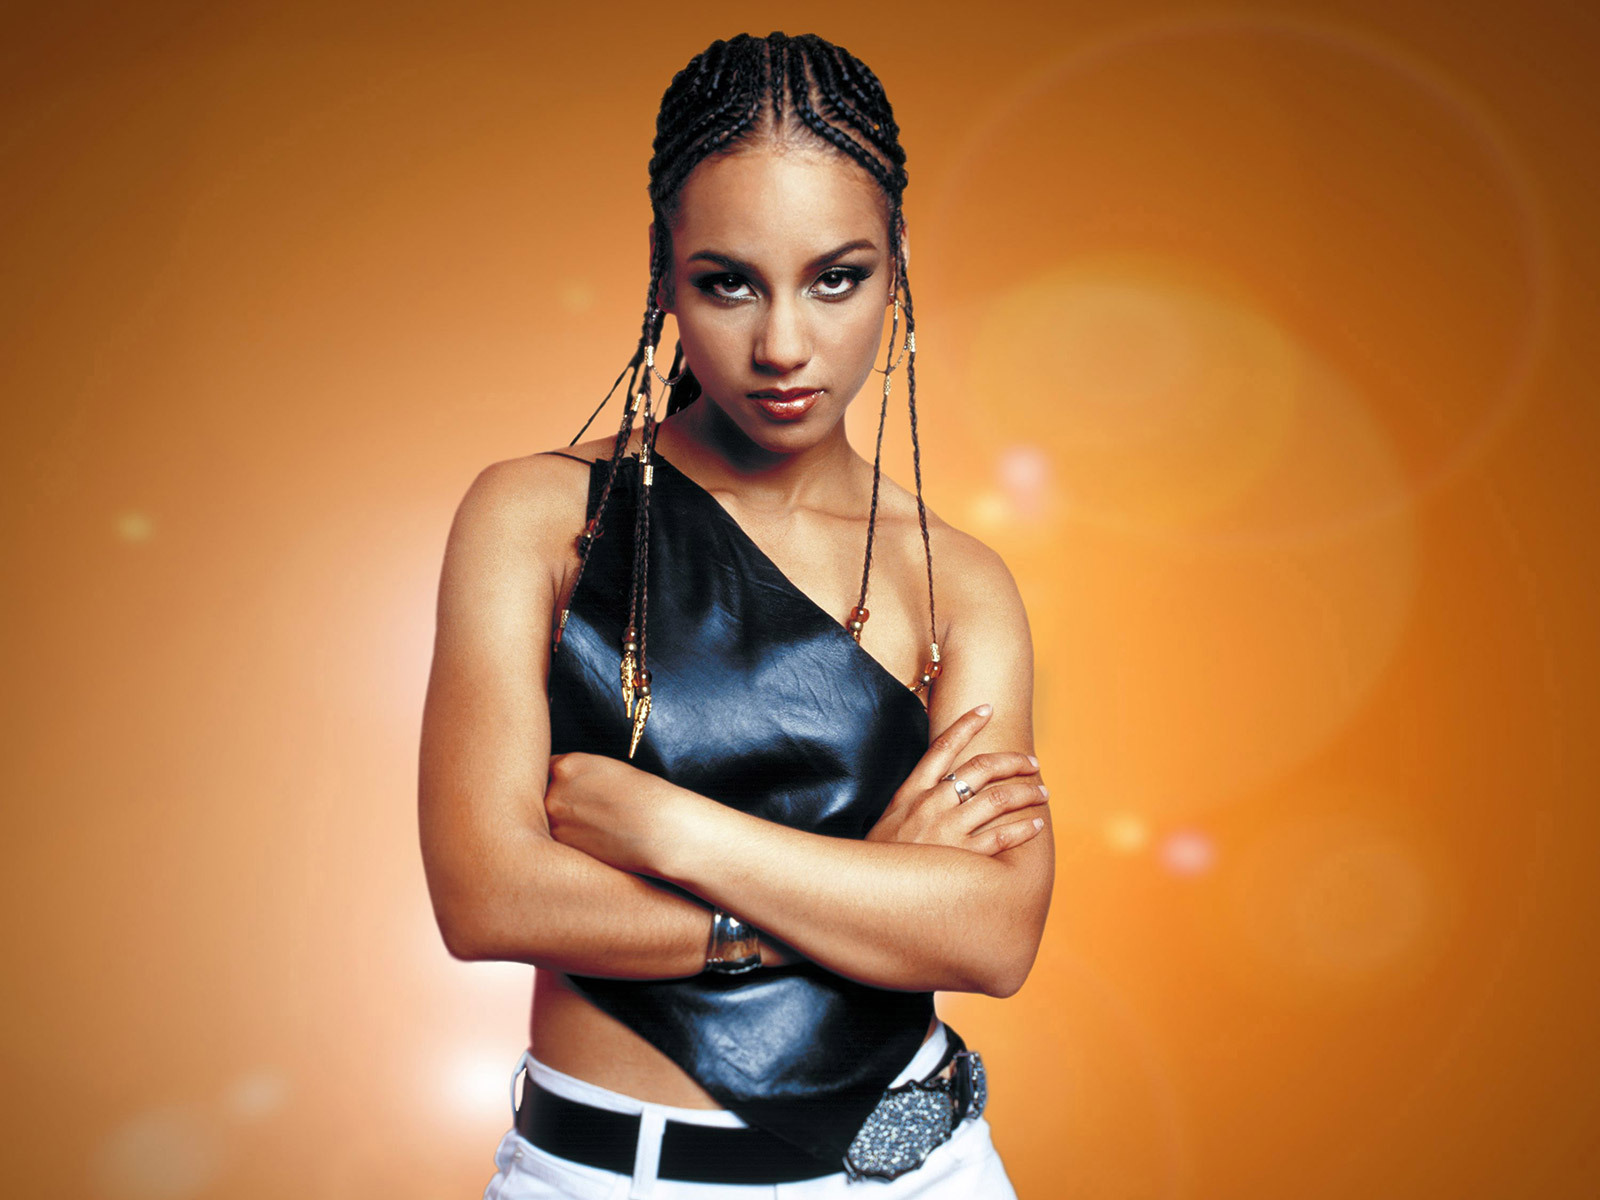 Alicia Keys Wallpapers Widescreen For Desktop